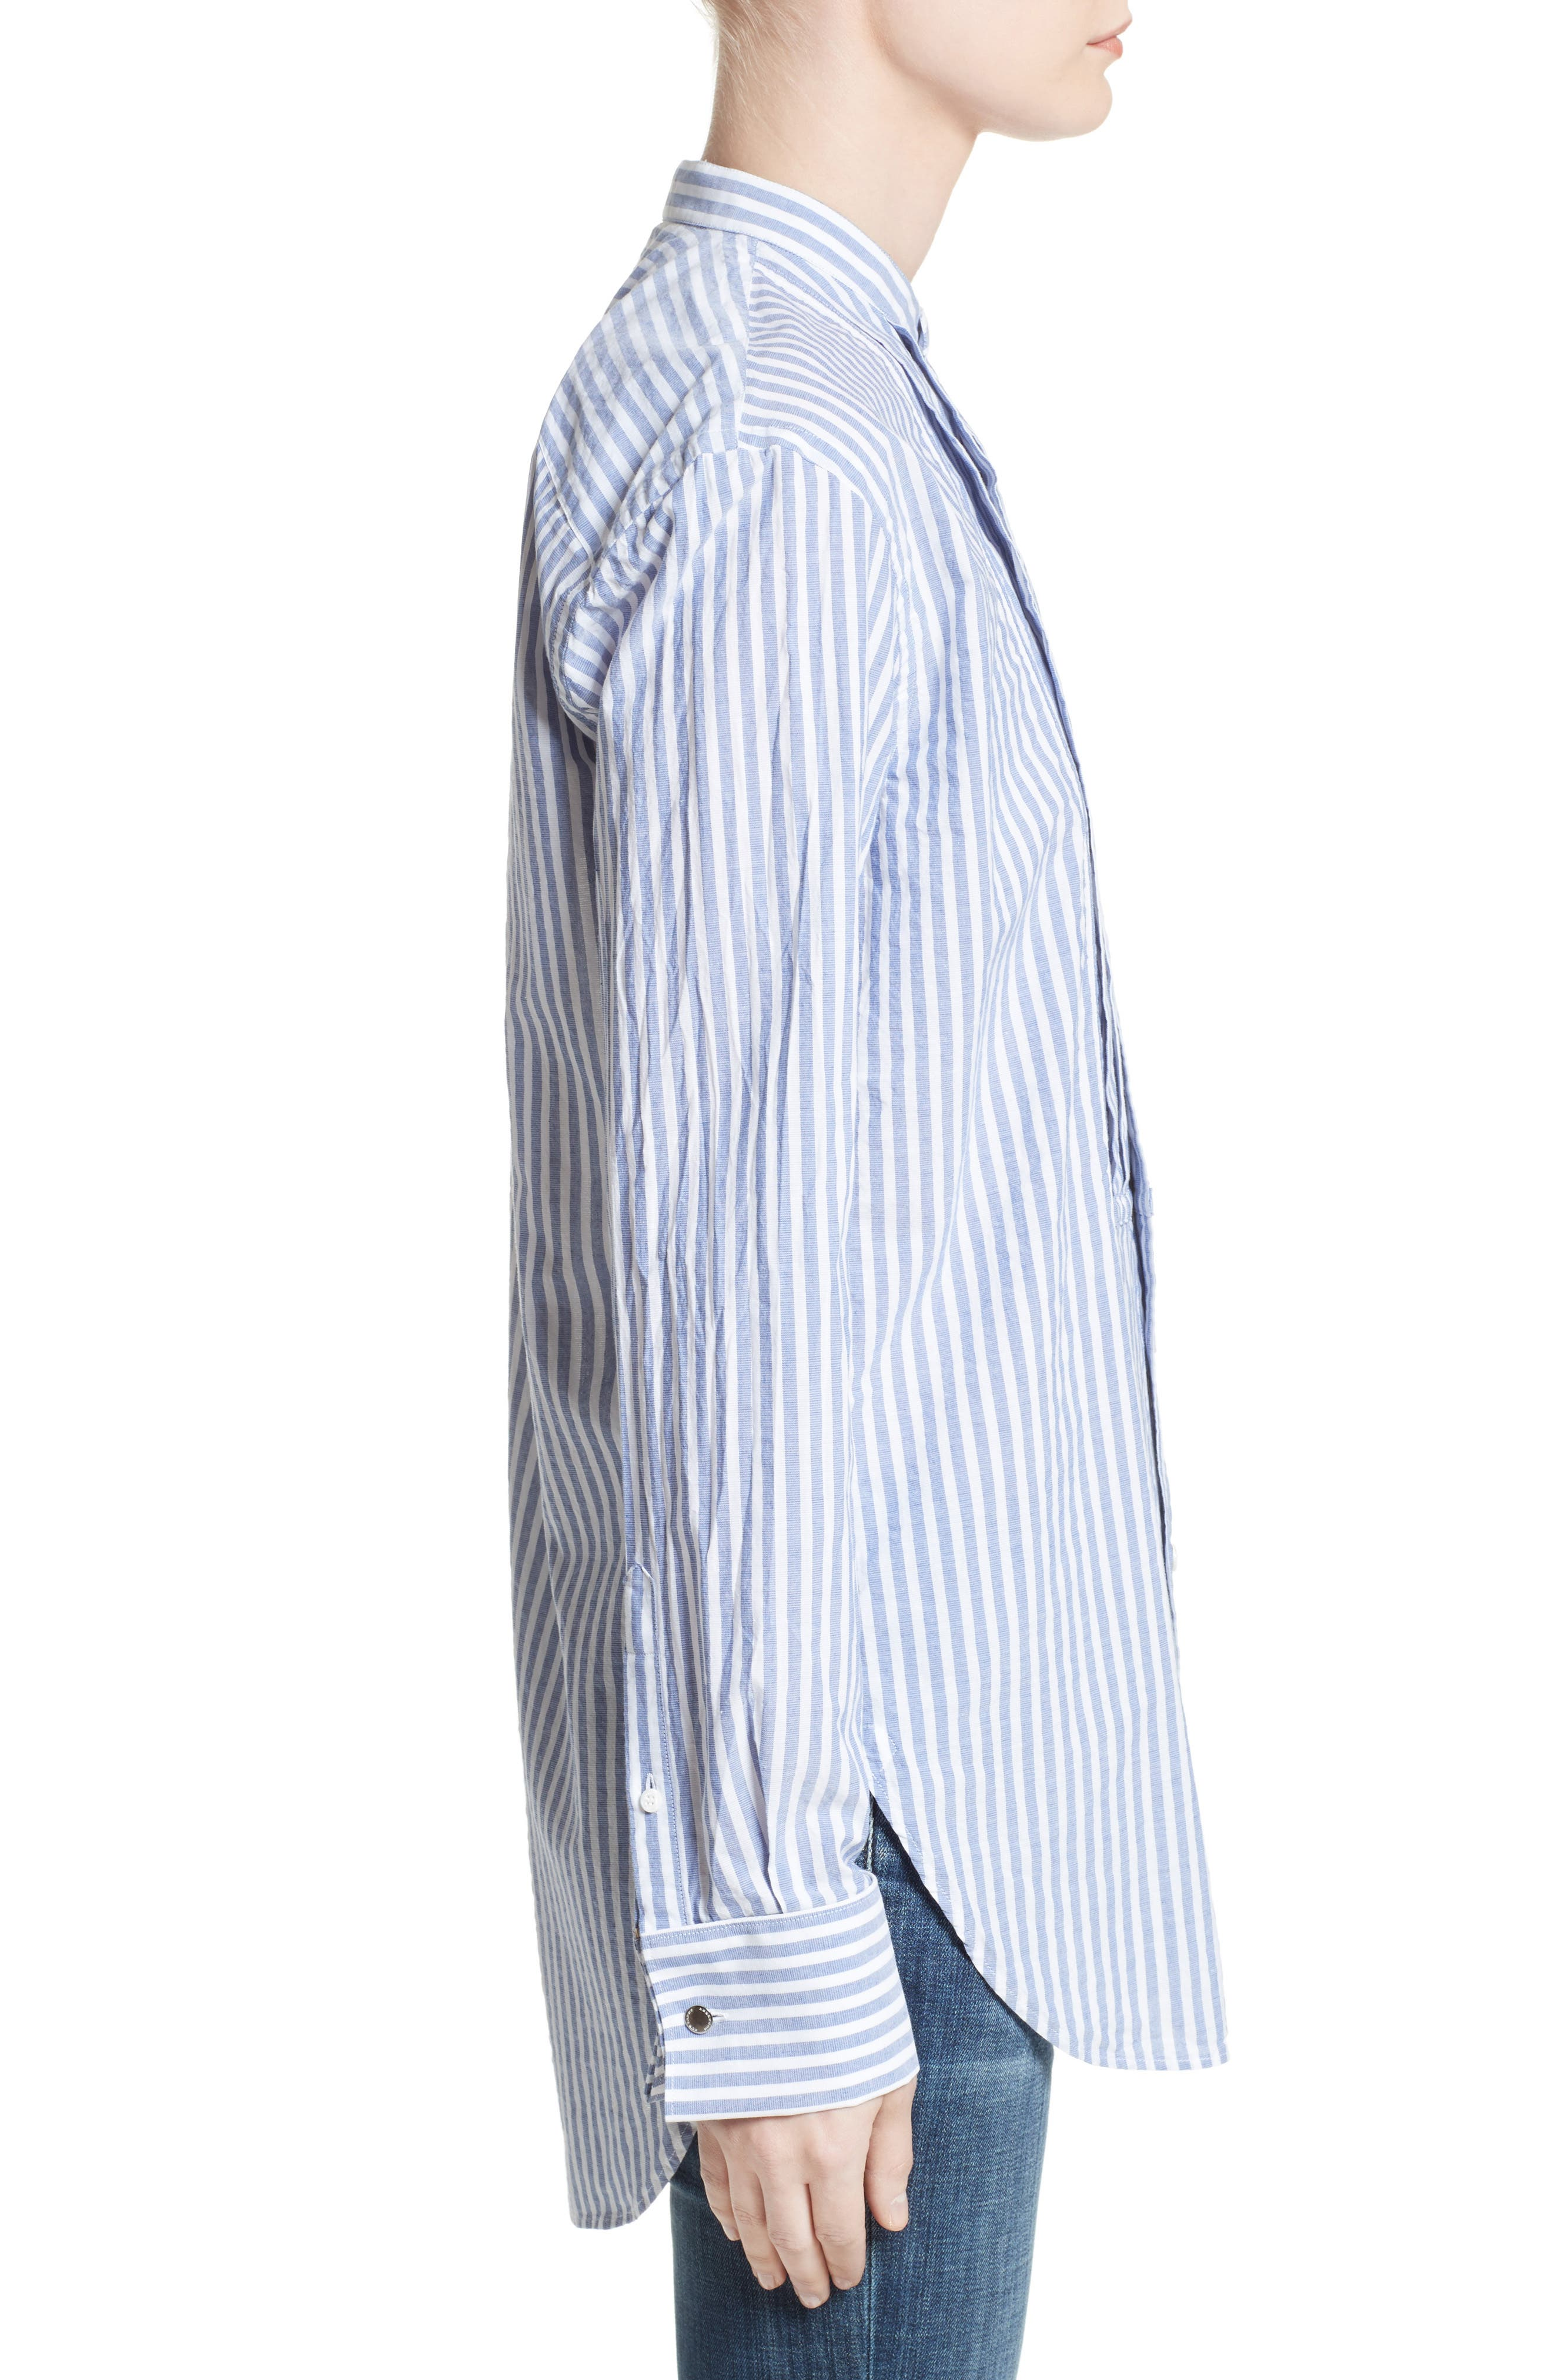 Benfleet Stripe Cotton Top,                             Alternate thumbnail 5, color,                             Pale Blue/ White